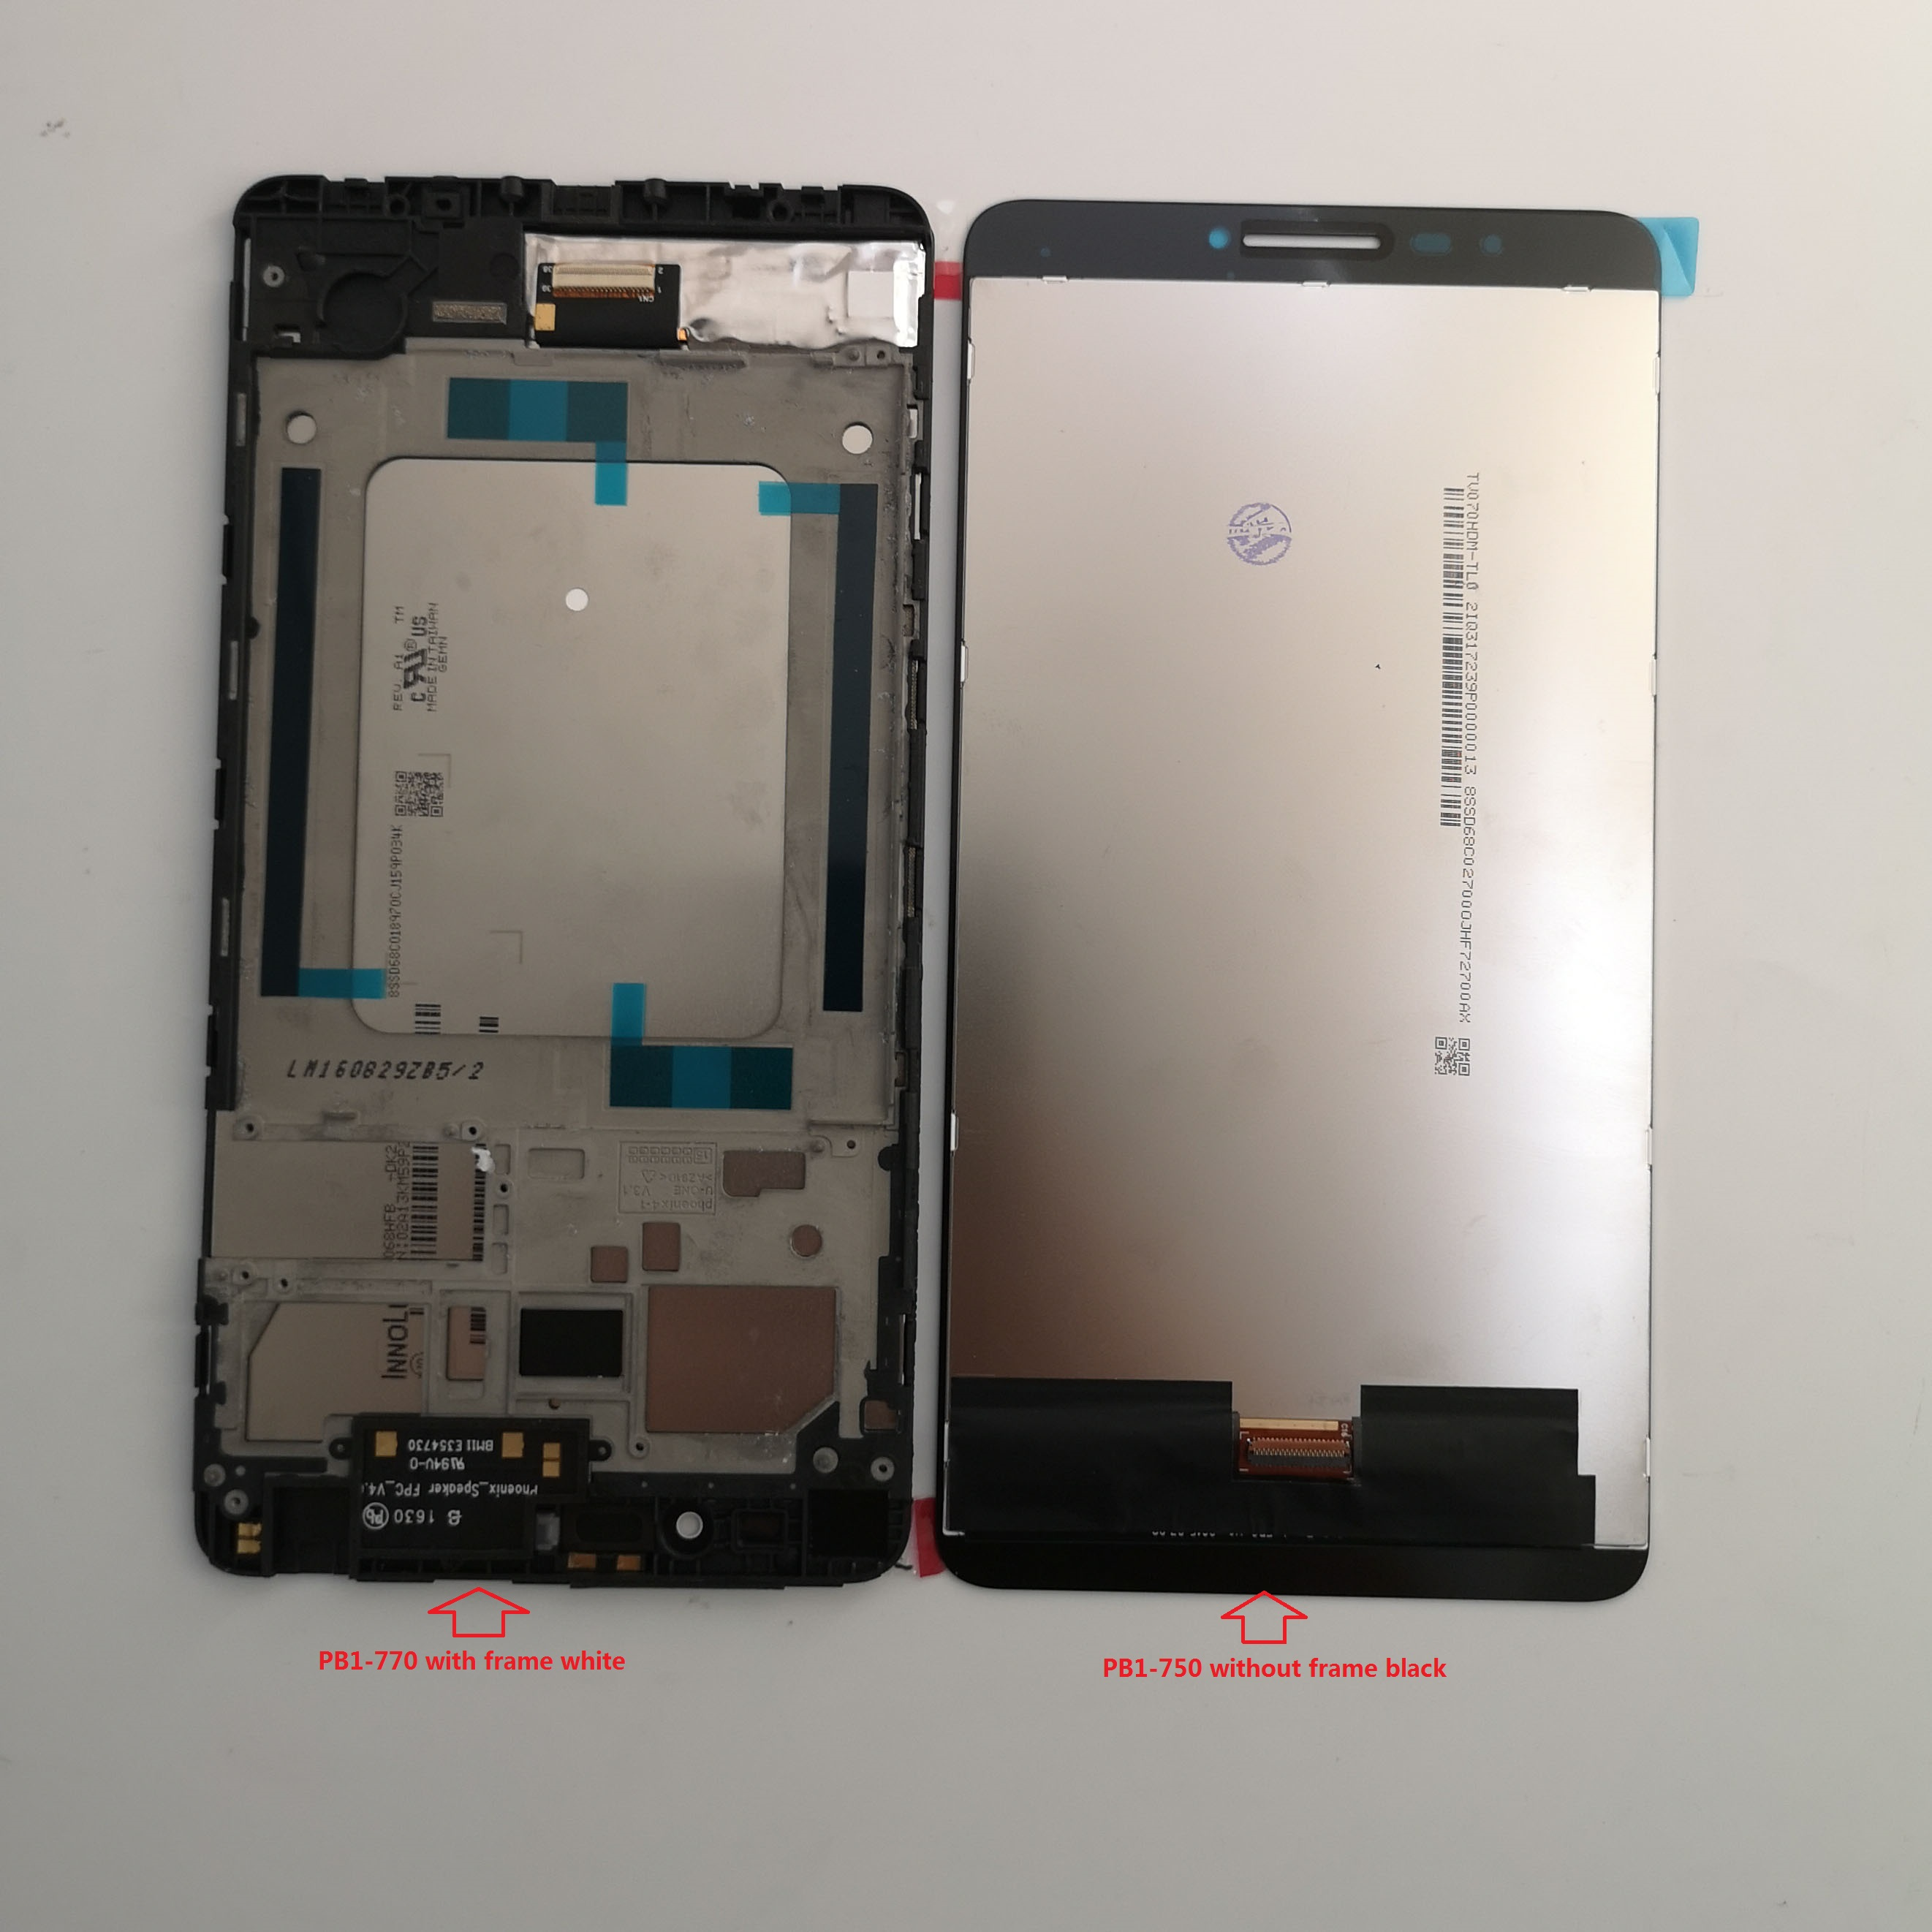 LCD Display + Touch Screen Digitizer Assembly For Lenovo PHAB PB1-750N PB1-750M PB1-750p Pb1-750 Plus PB1-770N PB1-770M PB1-770